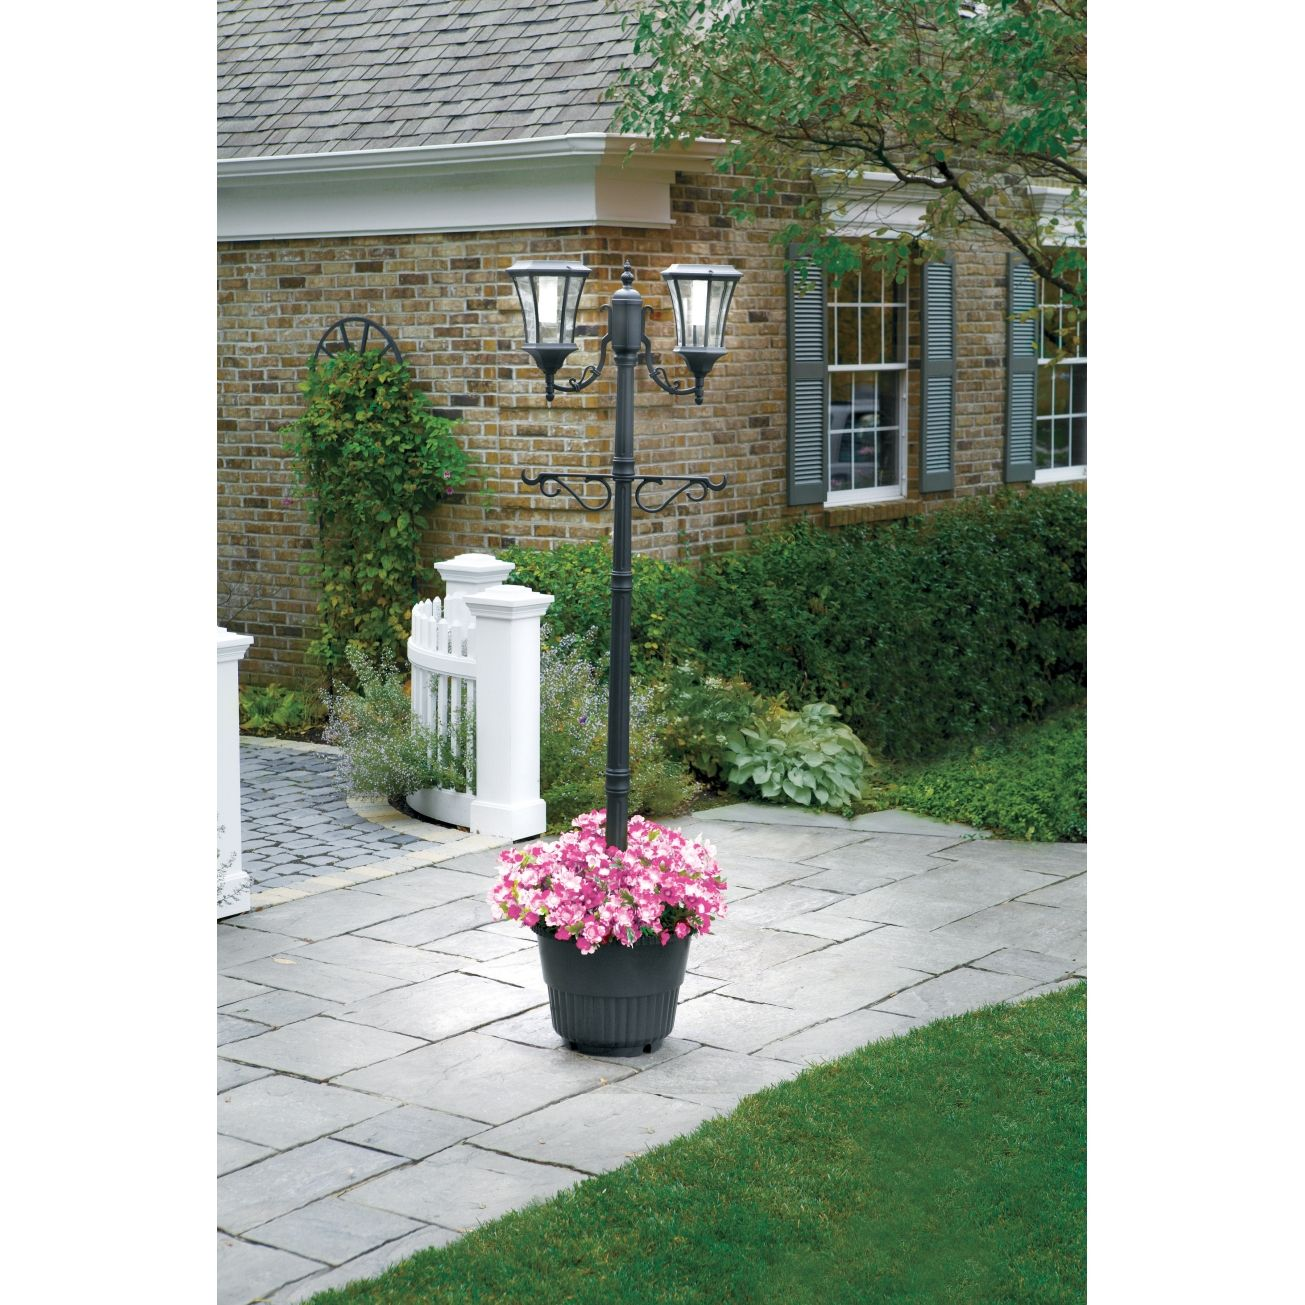 Patio Light Post Ideas: Sunergy Solar Lamp Post With Planter Base (50400356